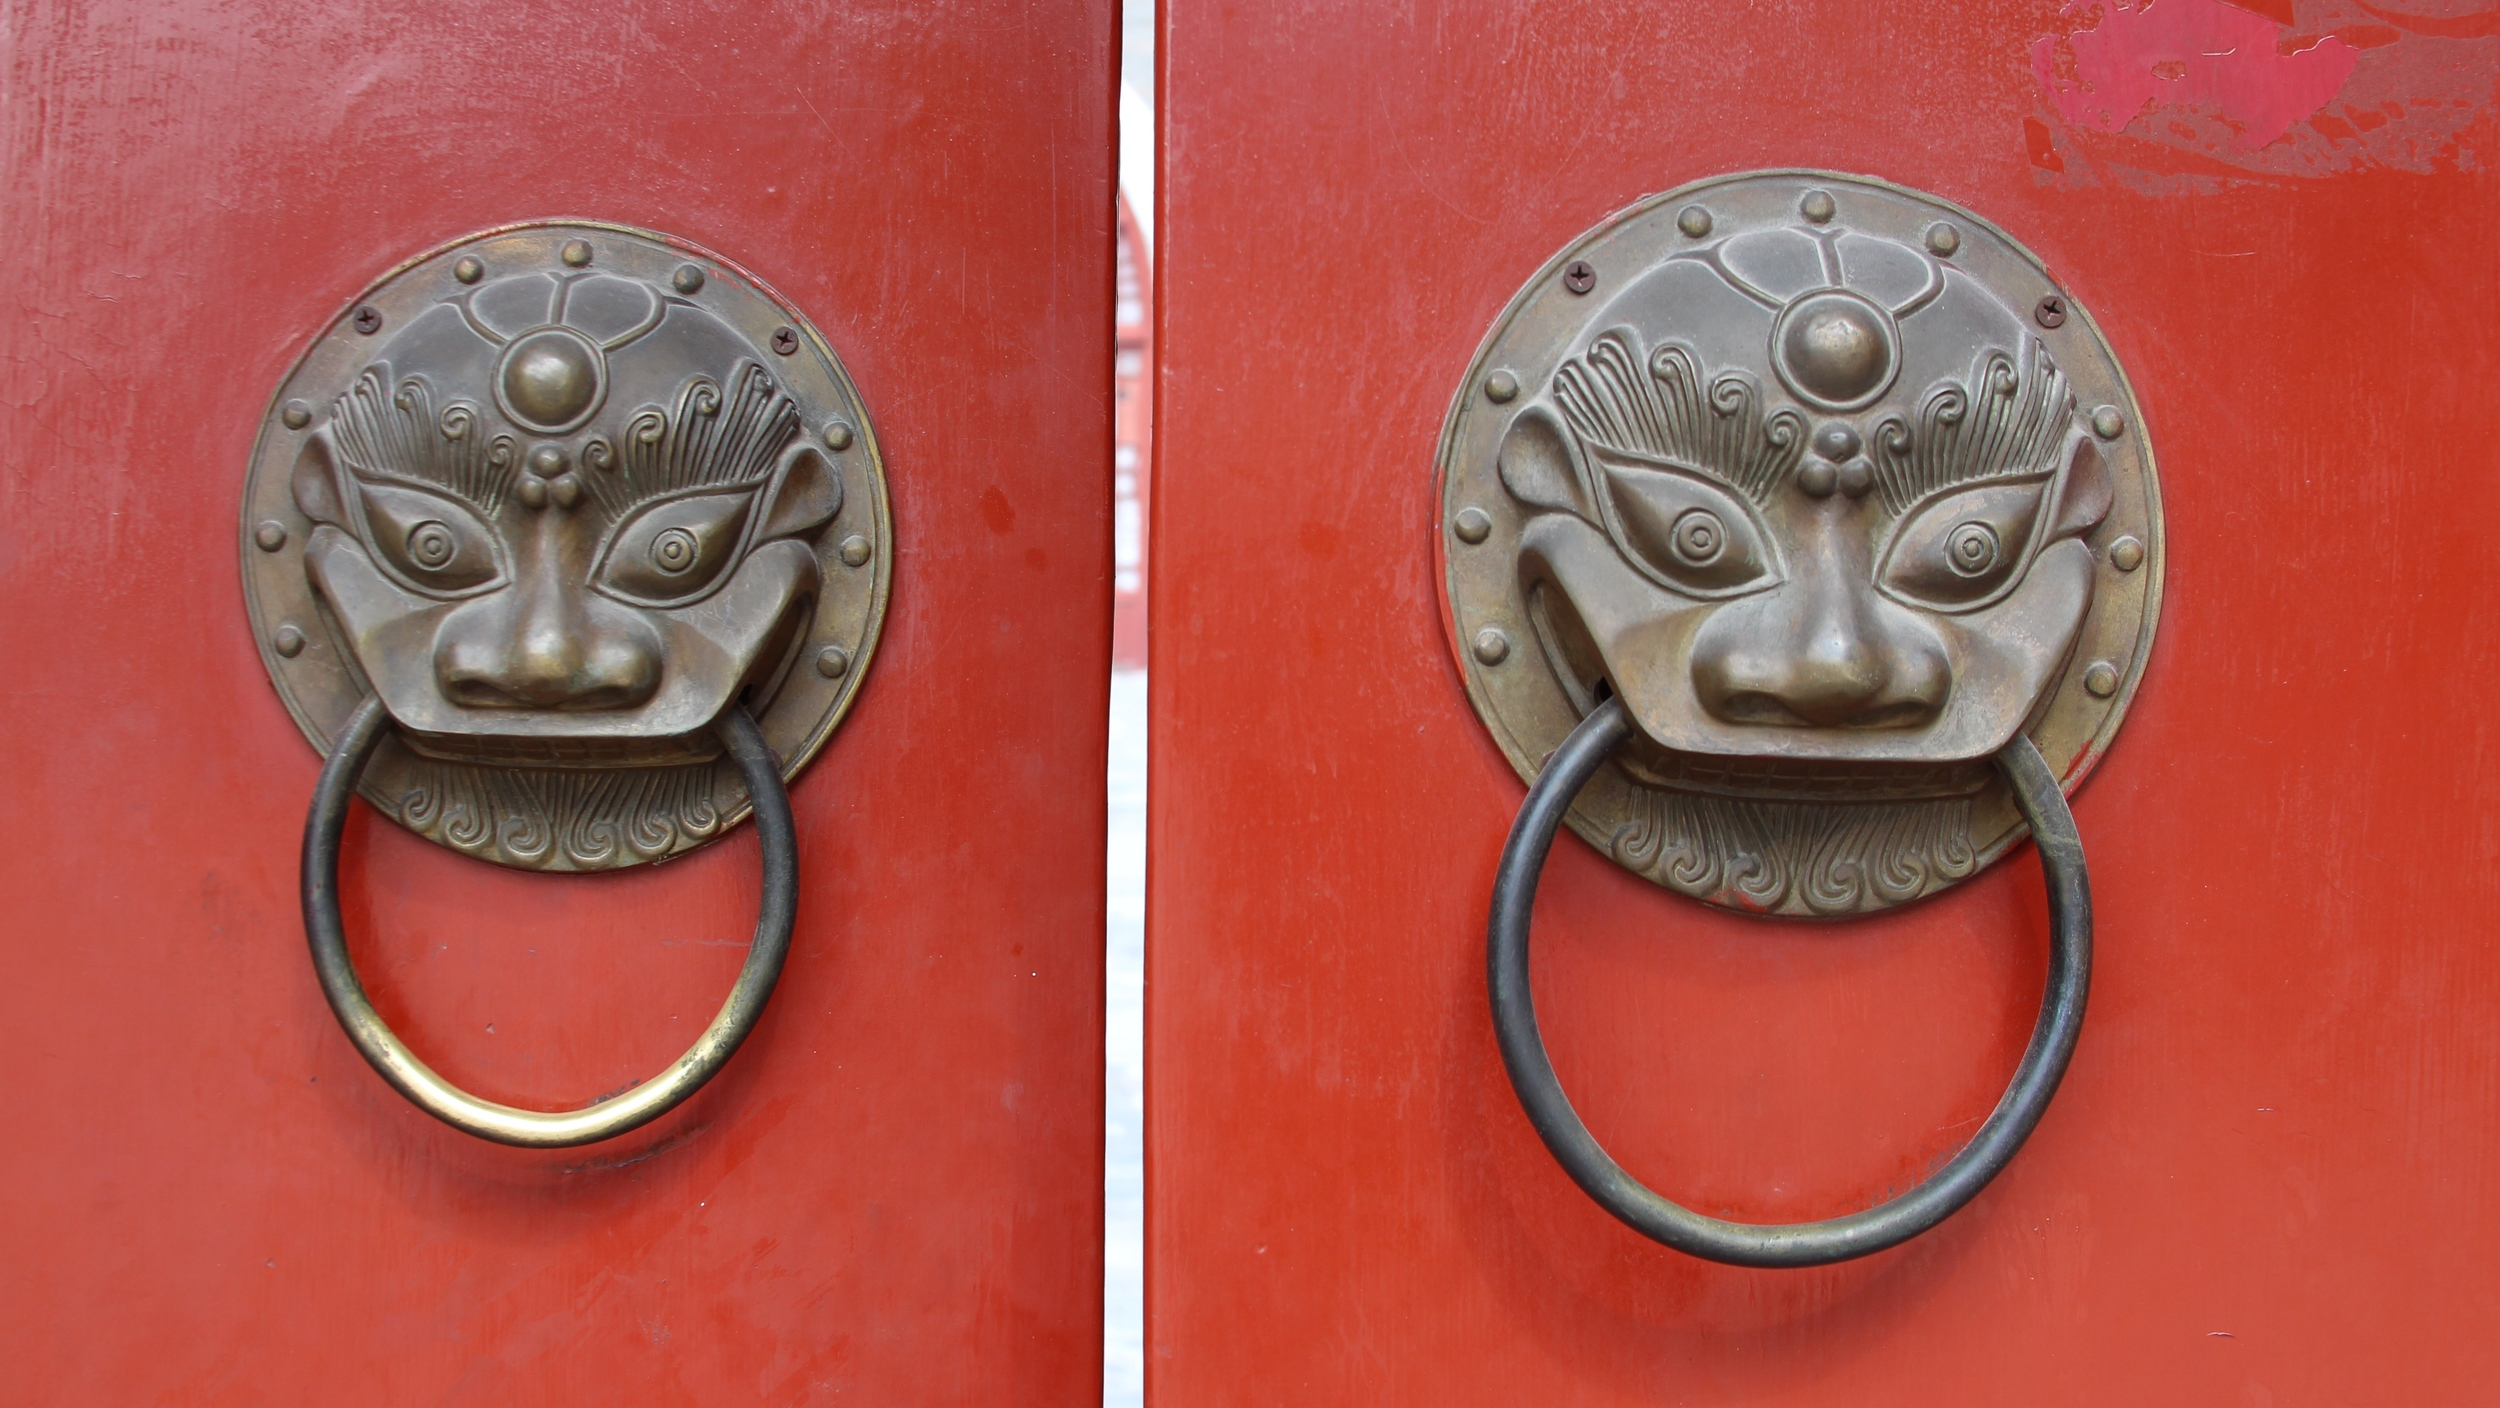 ...and these beautiful door pulls at the gate